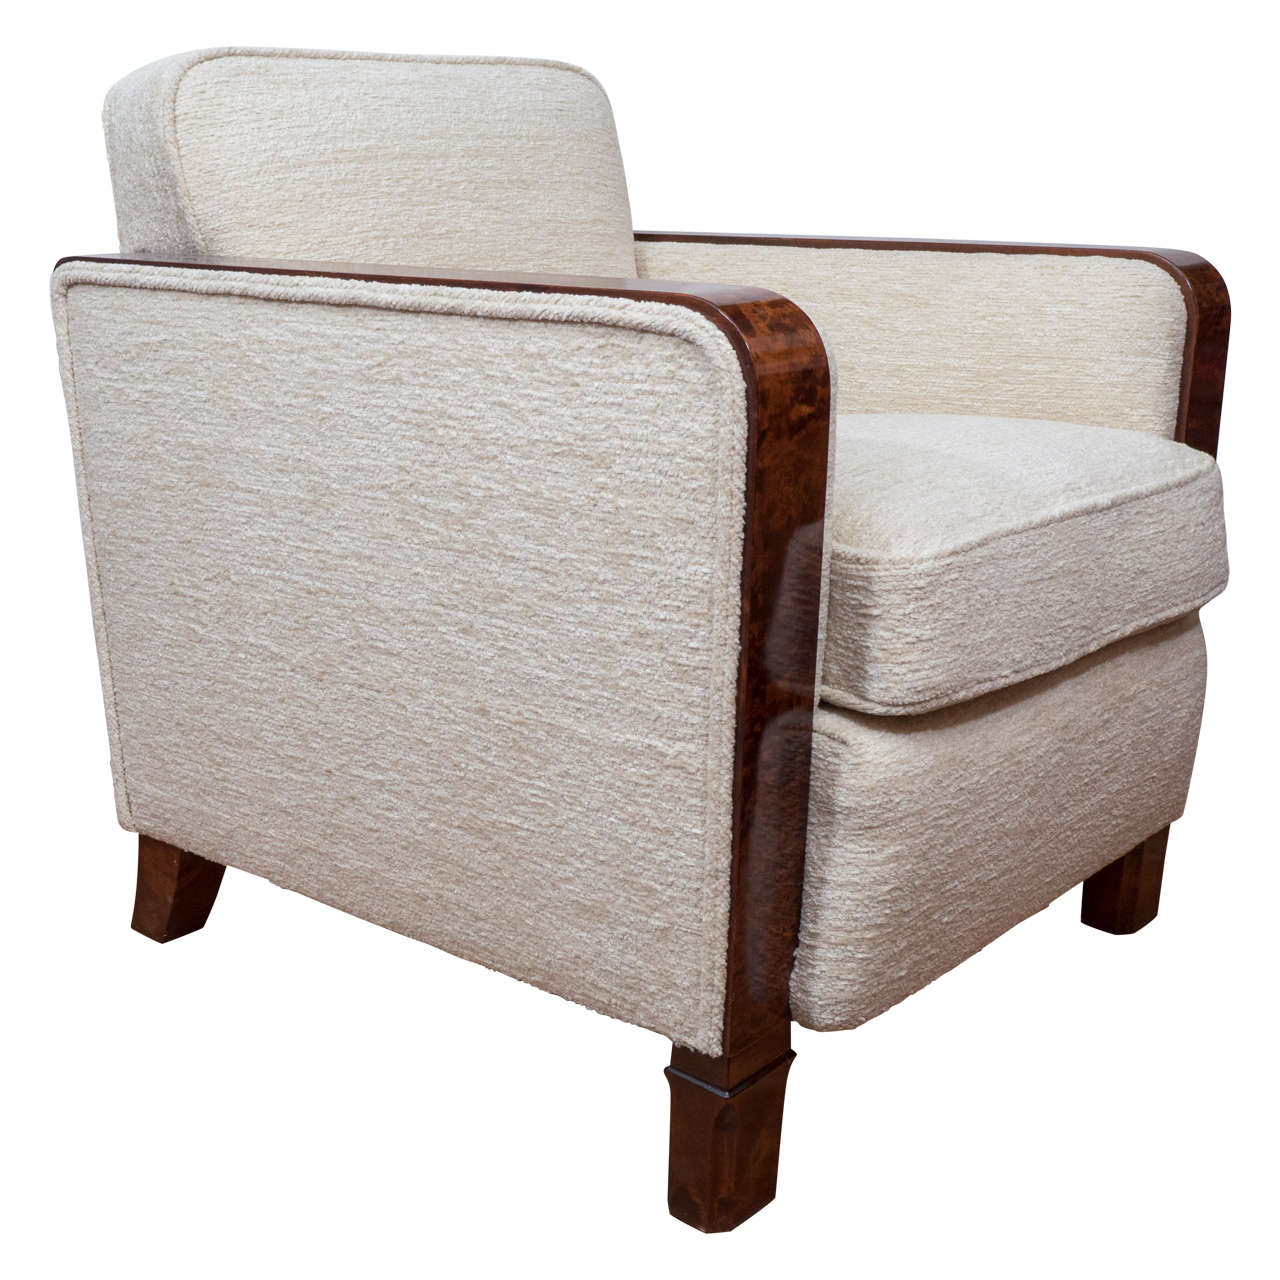 Art Deco Club Chairs In Chanel Style Cream Wool Boucle For Sale